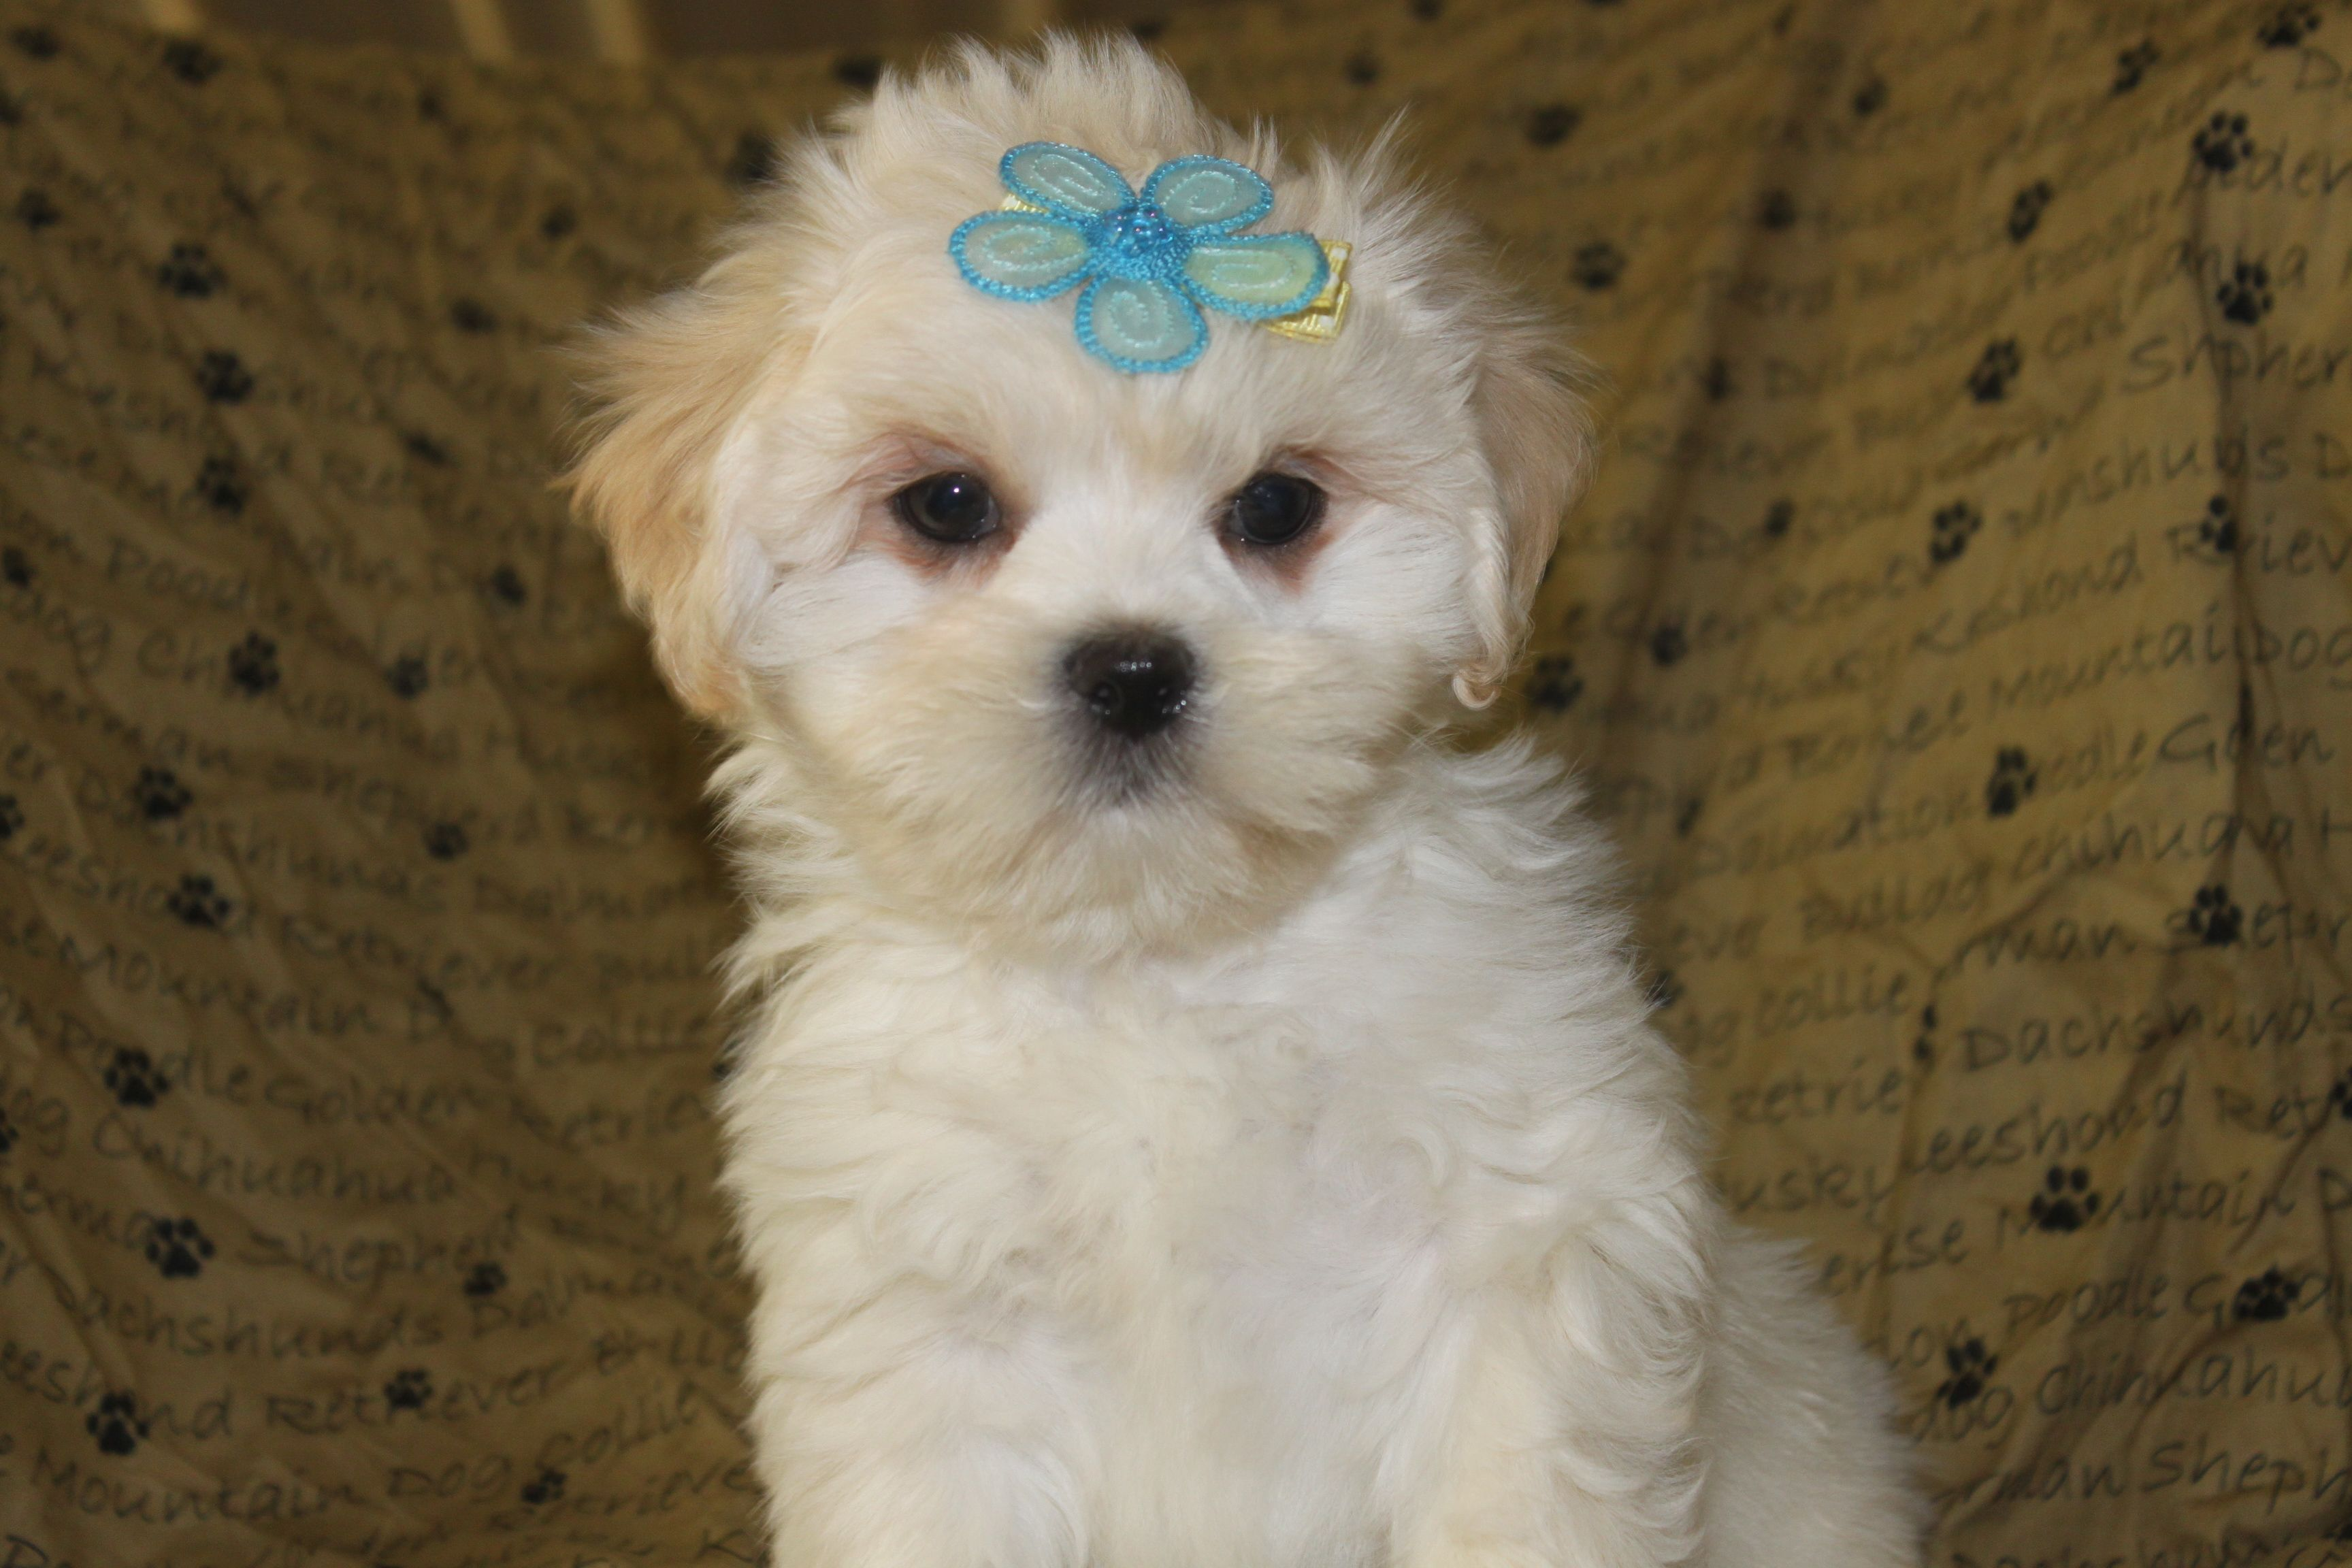 Zack is a lhasa apso puppy posted at